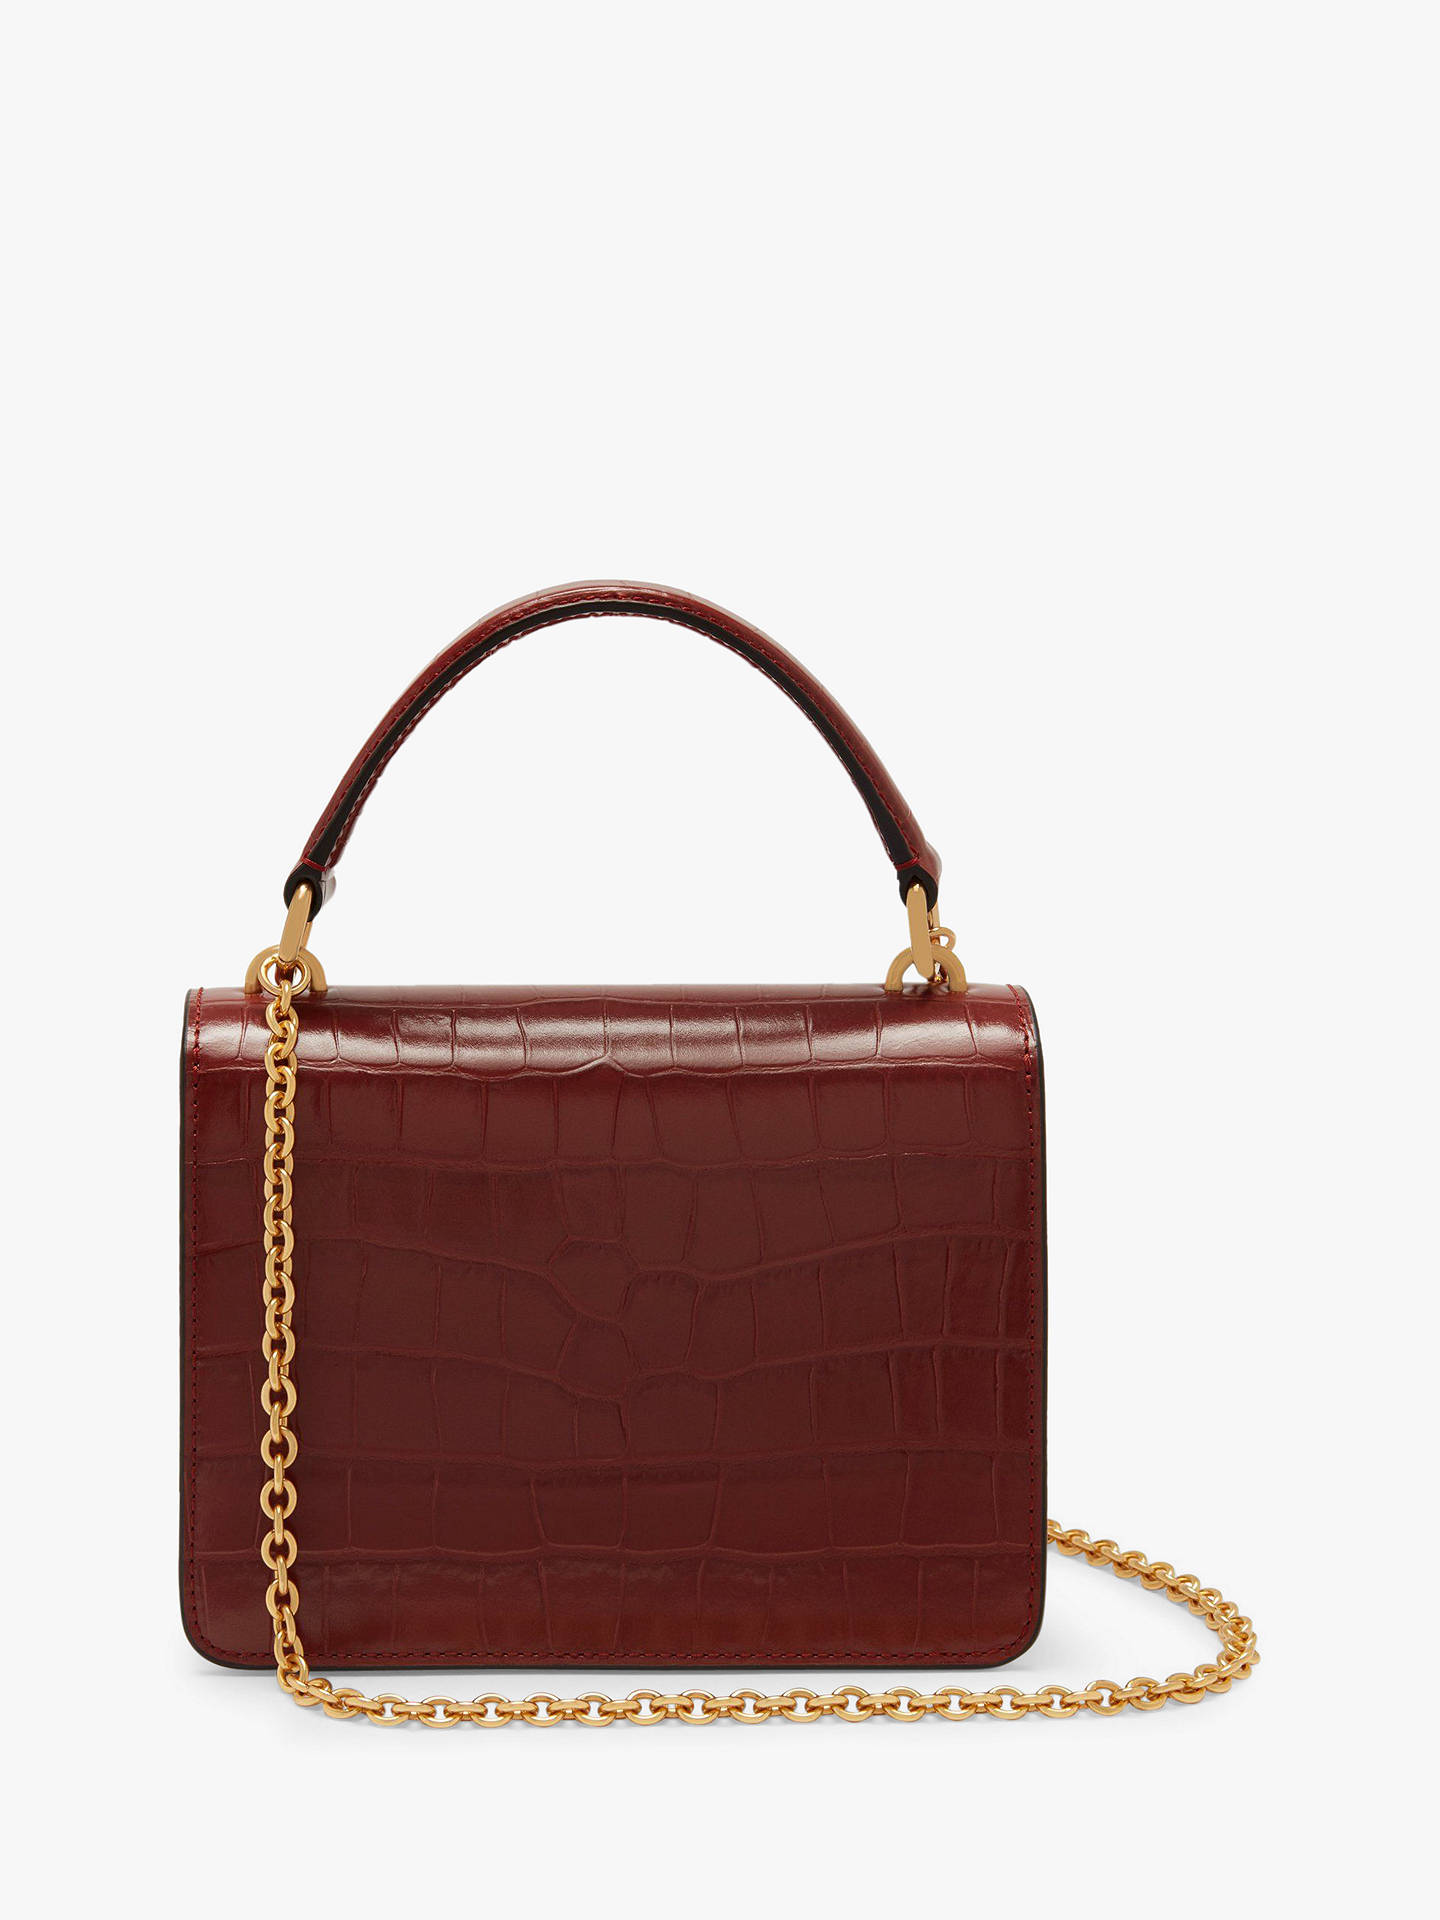 4a8bc30a7 ... Buy Mulberry Small Harlow Croc Embossed Leather Cross Body Bag,  Venetian Red Online at johnlewis ...